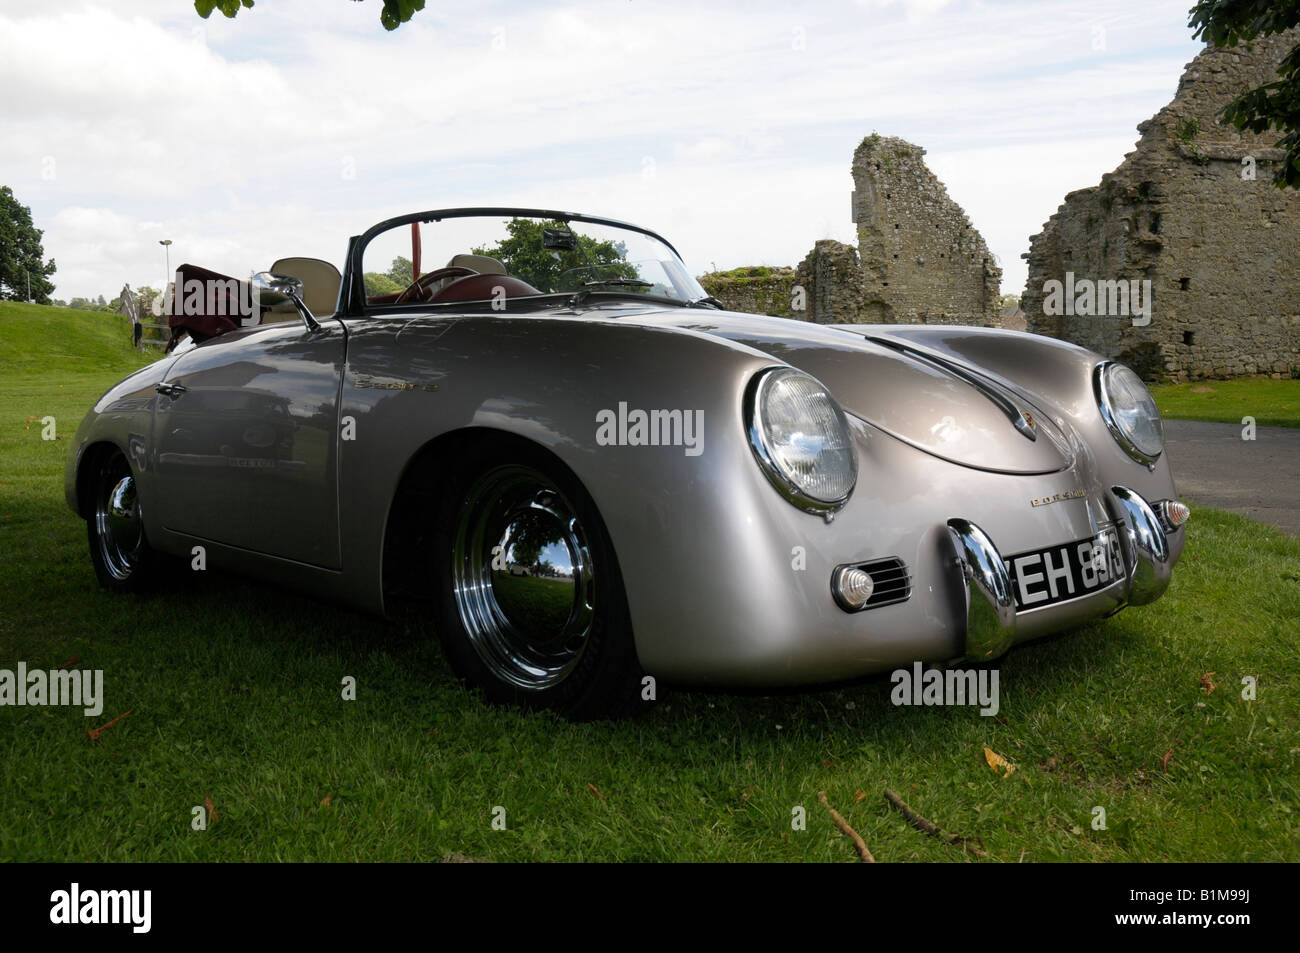 Chesil Speedster 2 Kit Car Loose Replica Of A Porsche 356 With Stock